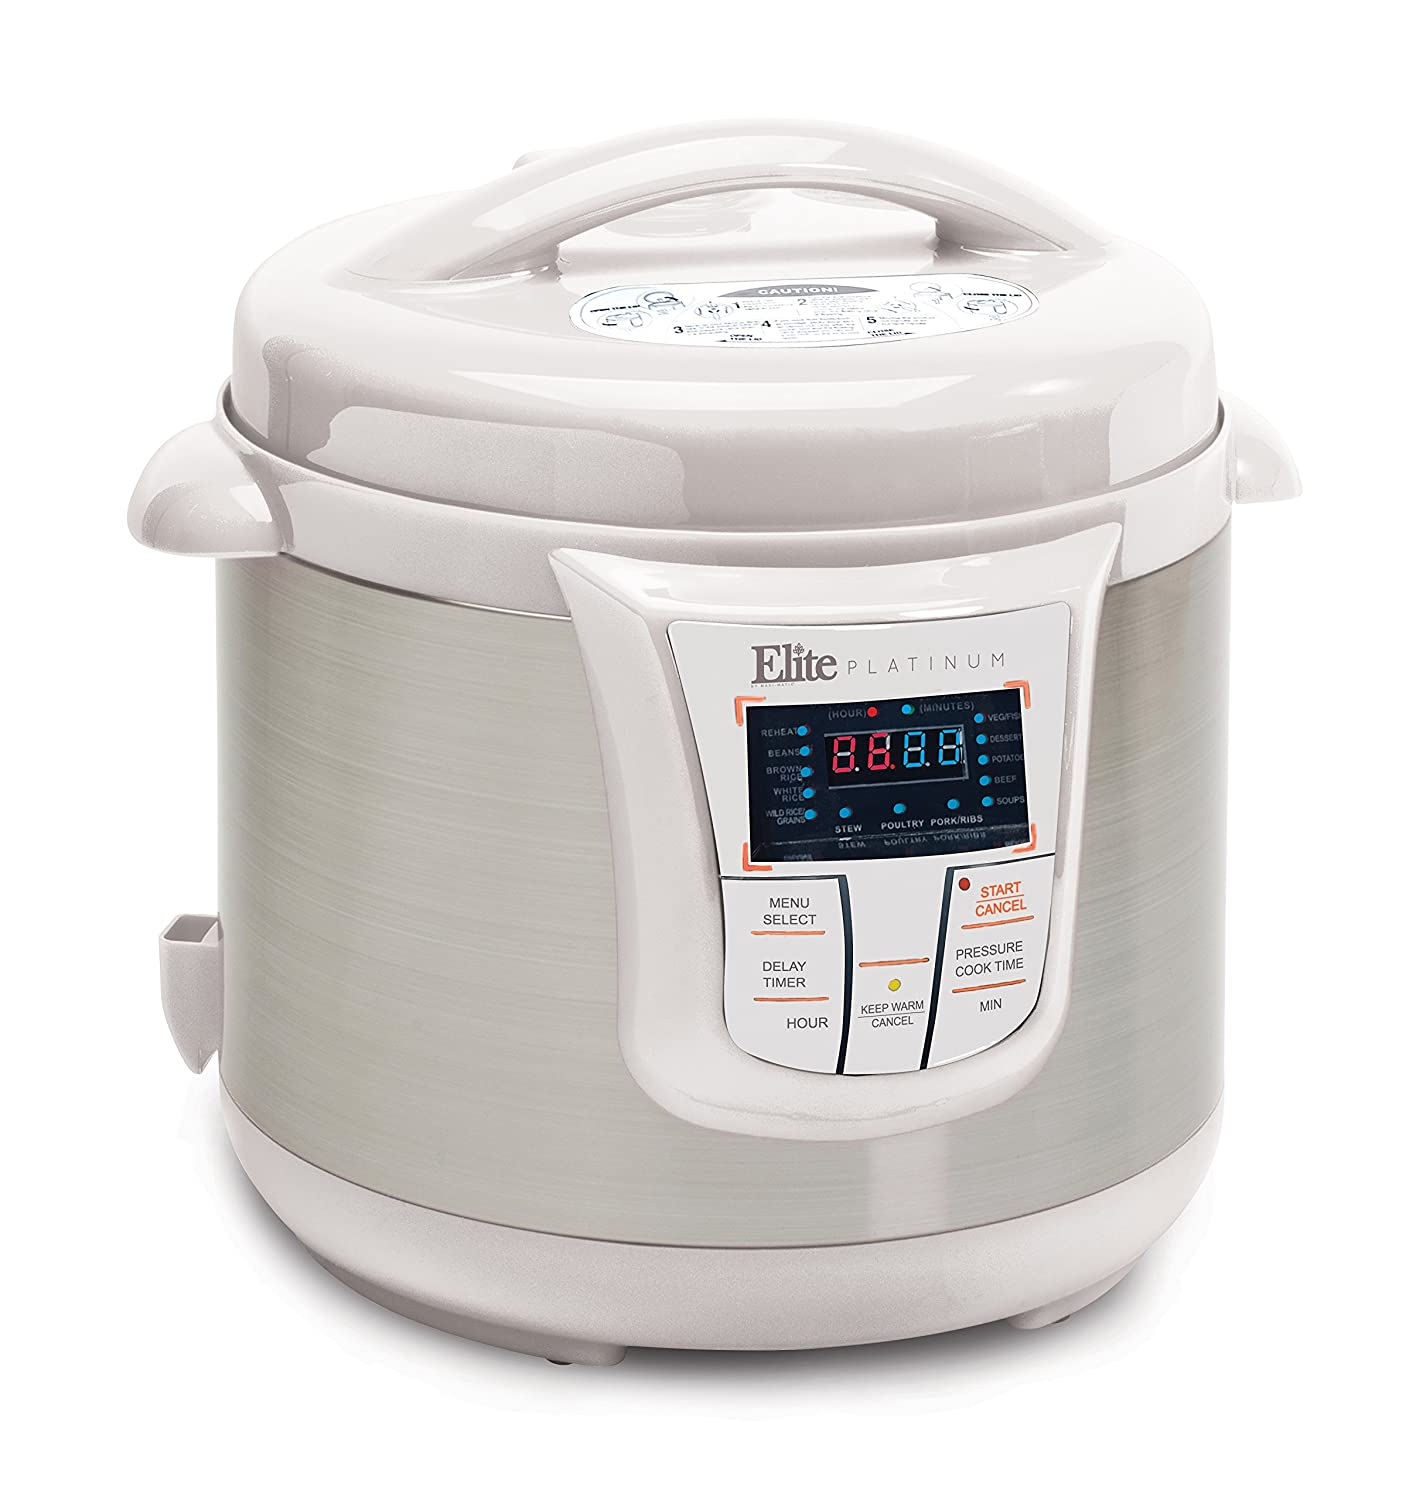 Elite Platinum 8 Quart 14-in-1 Multi-Use Programmable Pressure Cooker, Slow Cooker, Rice Cooker, Sauté, and Warmer - White